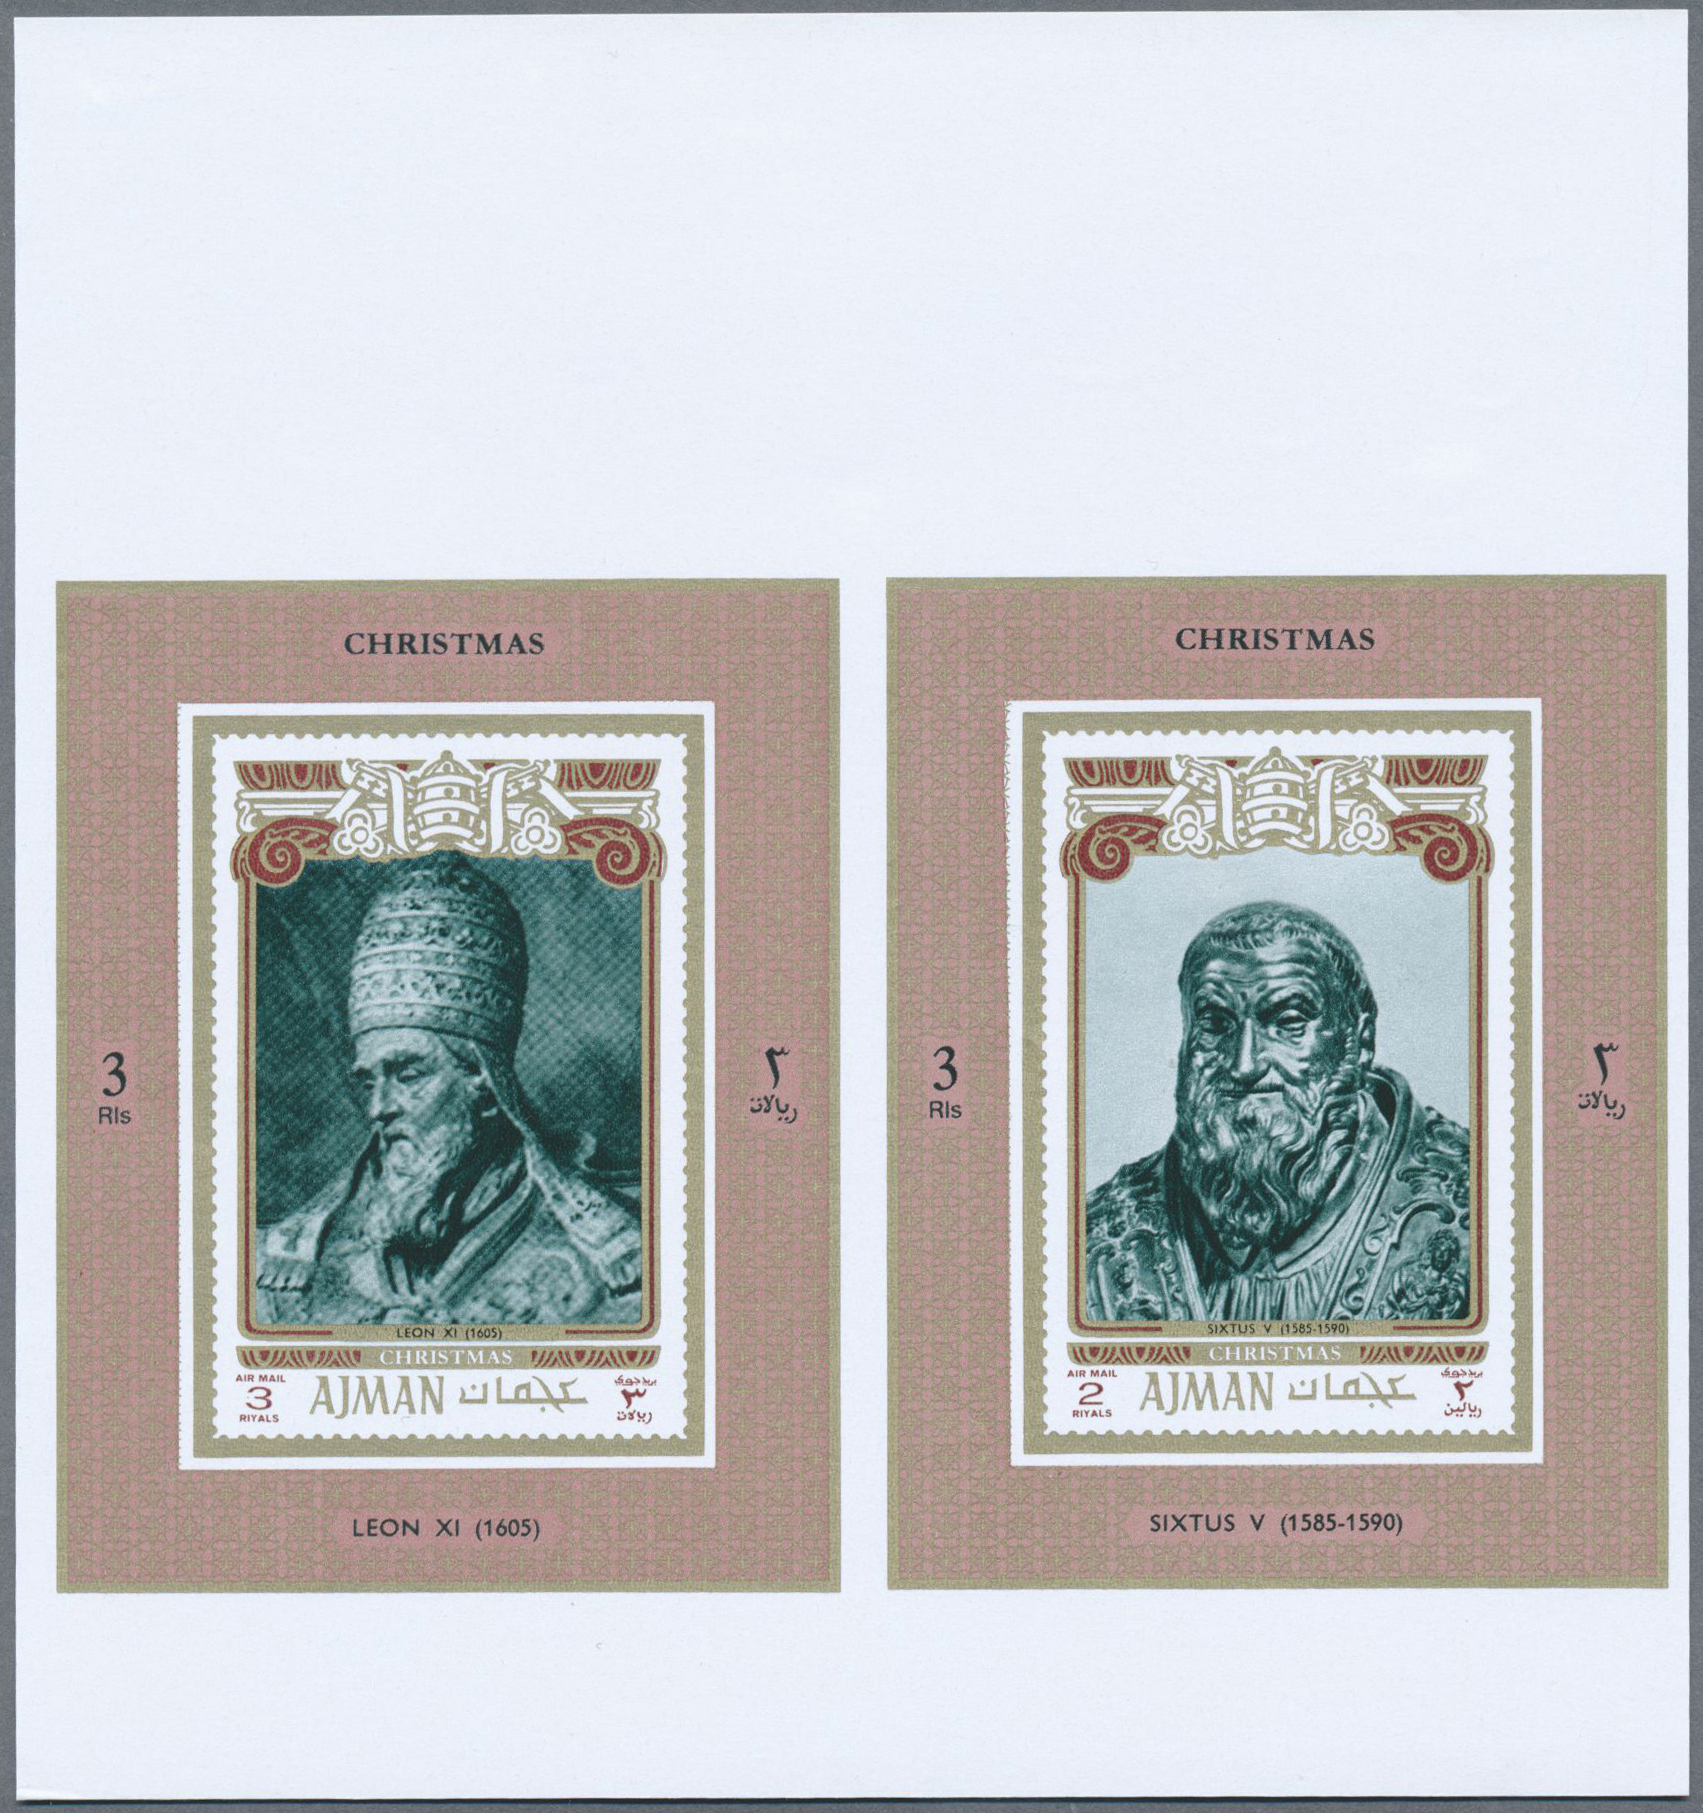 Lot 12151 - thematik: religion / religion  -  Auktionshaus Christoph Gärtner GmbH & Co. KG Single lots Philately Overseas & Europe. Auction #39 Day 4